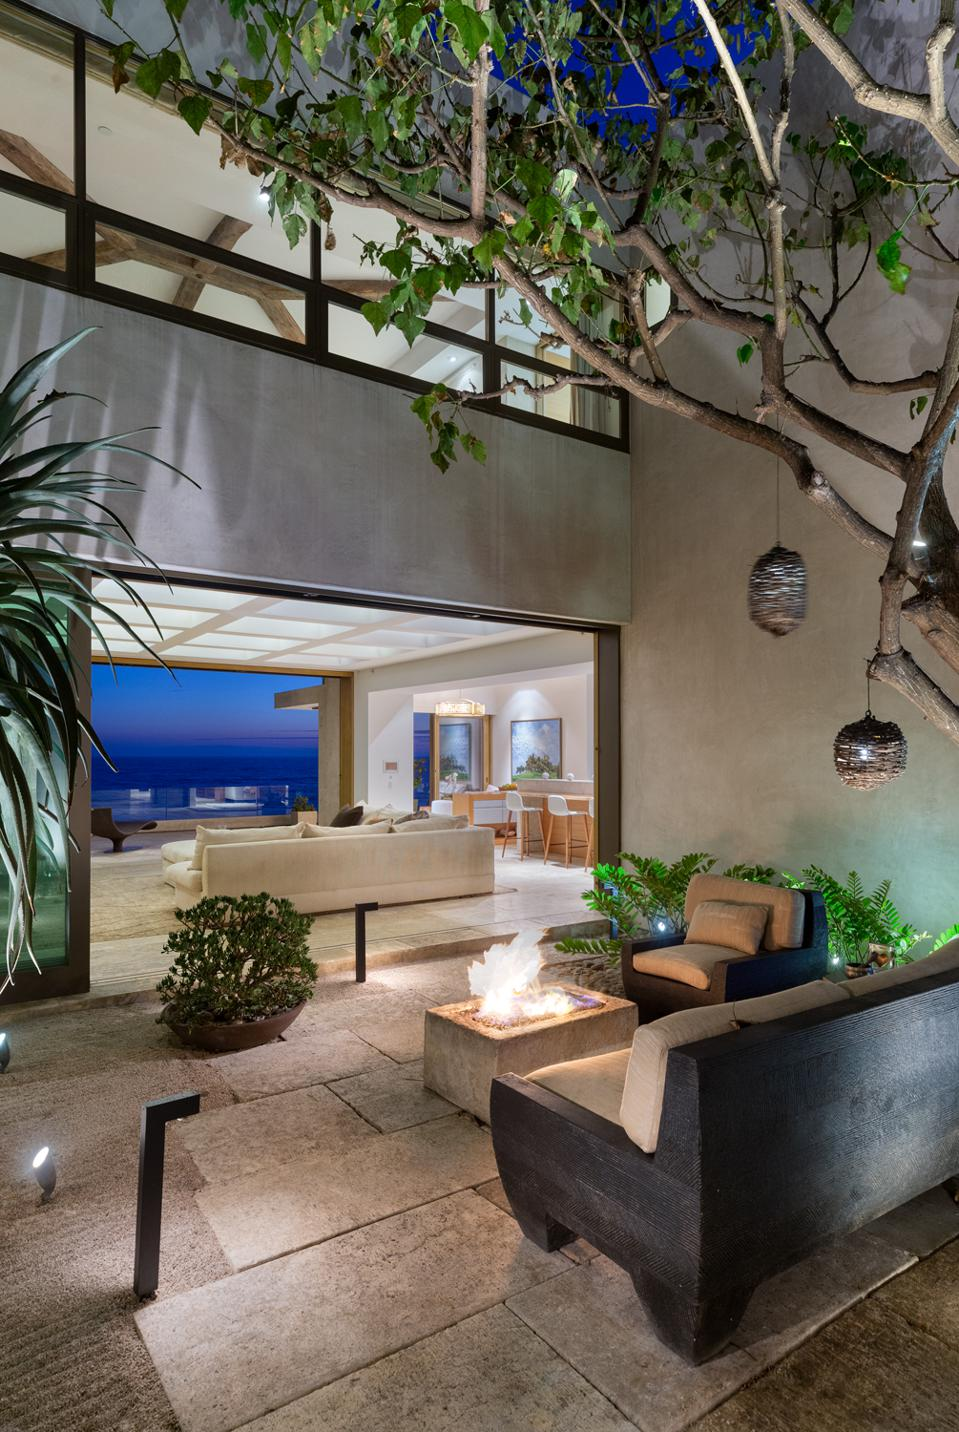 This 26 Million Healthy House In Orange County Is Almost Completely Toxin Free